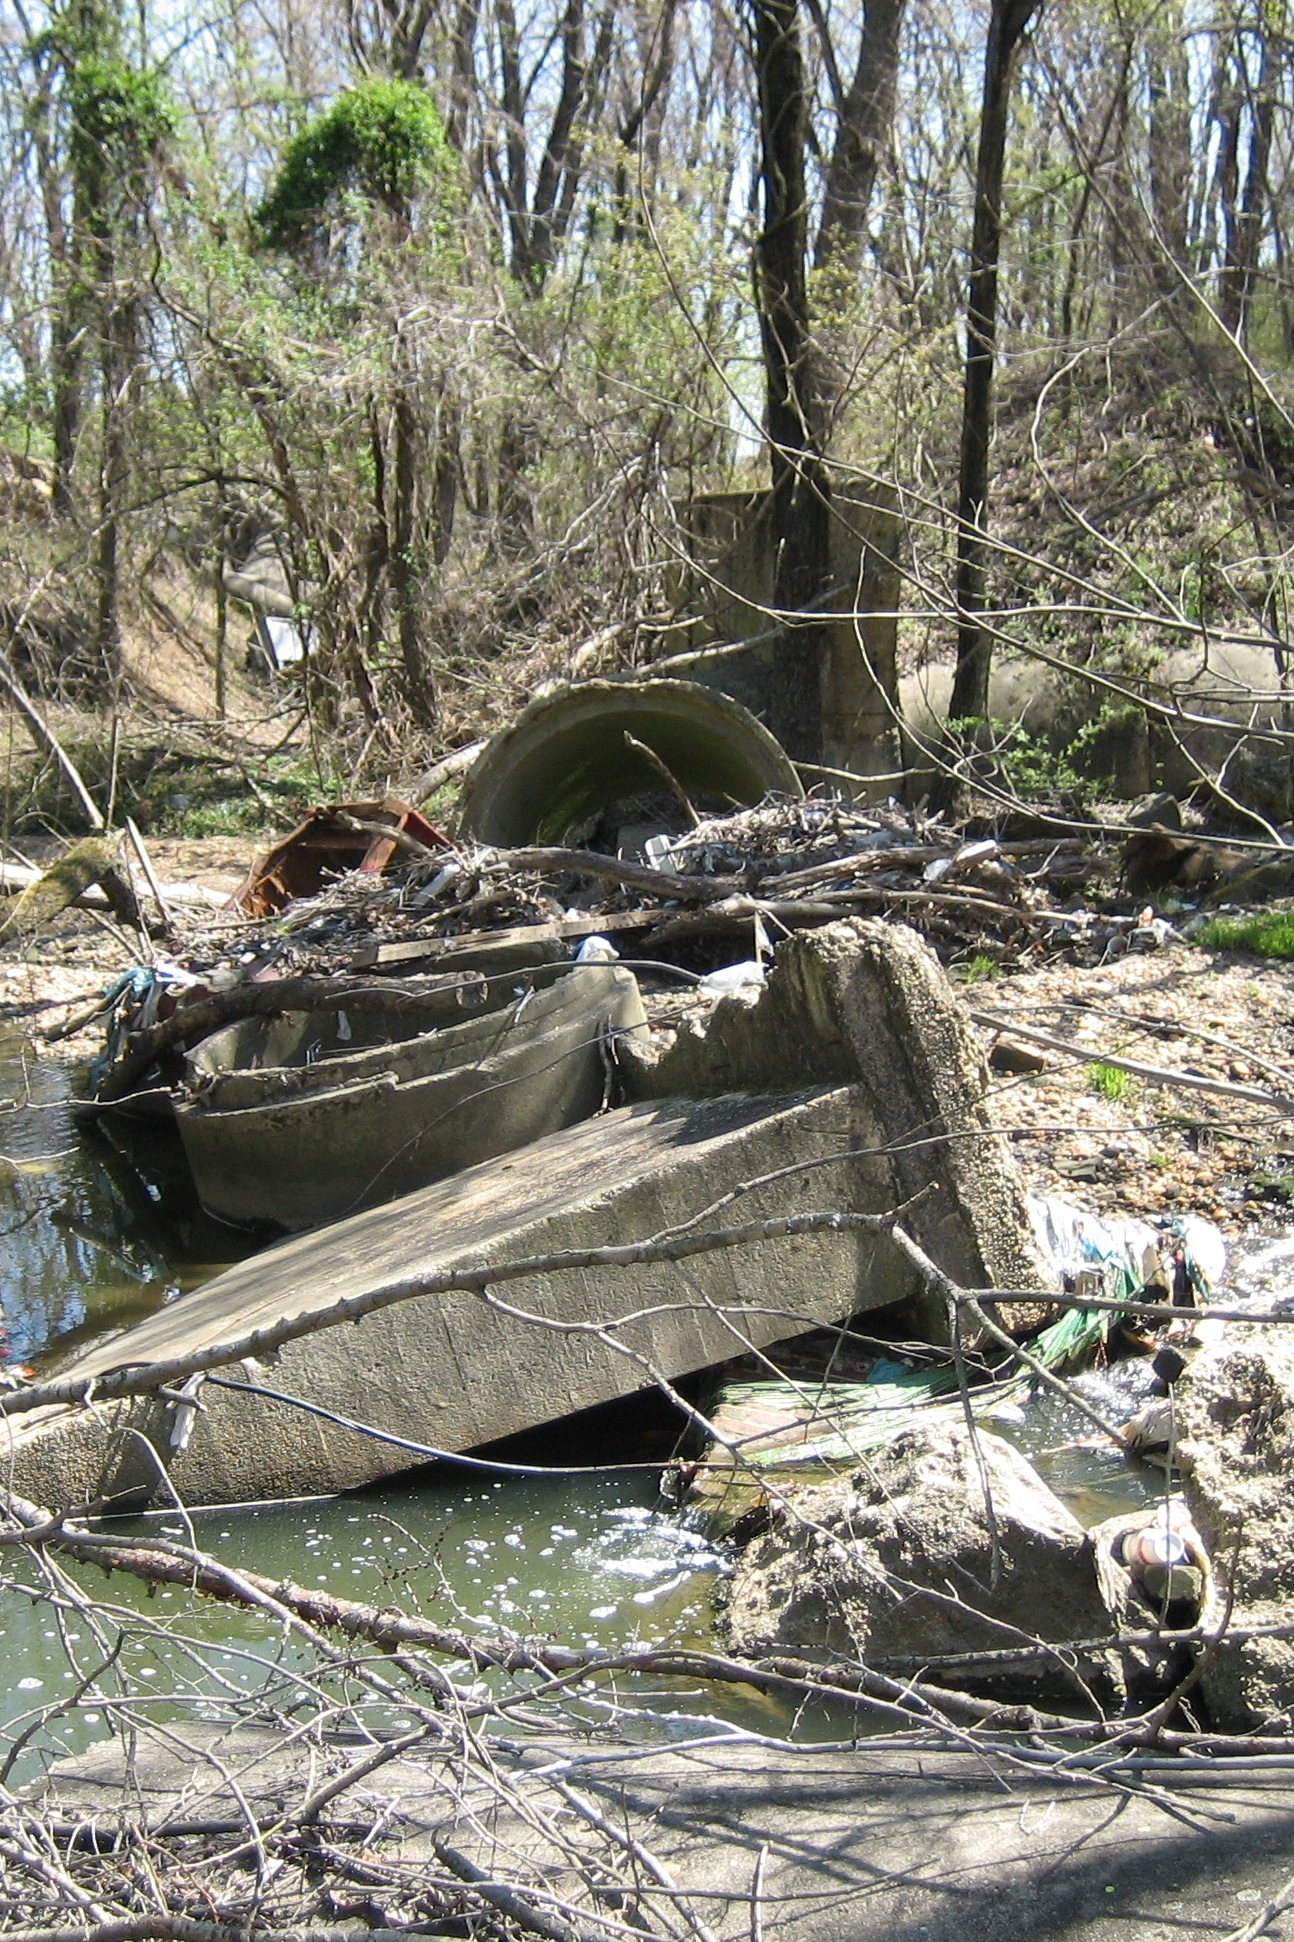 Debris in stream